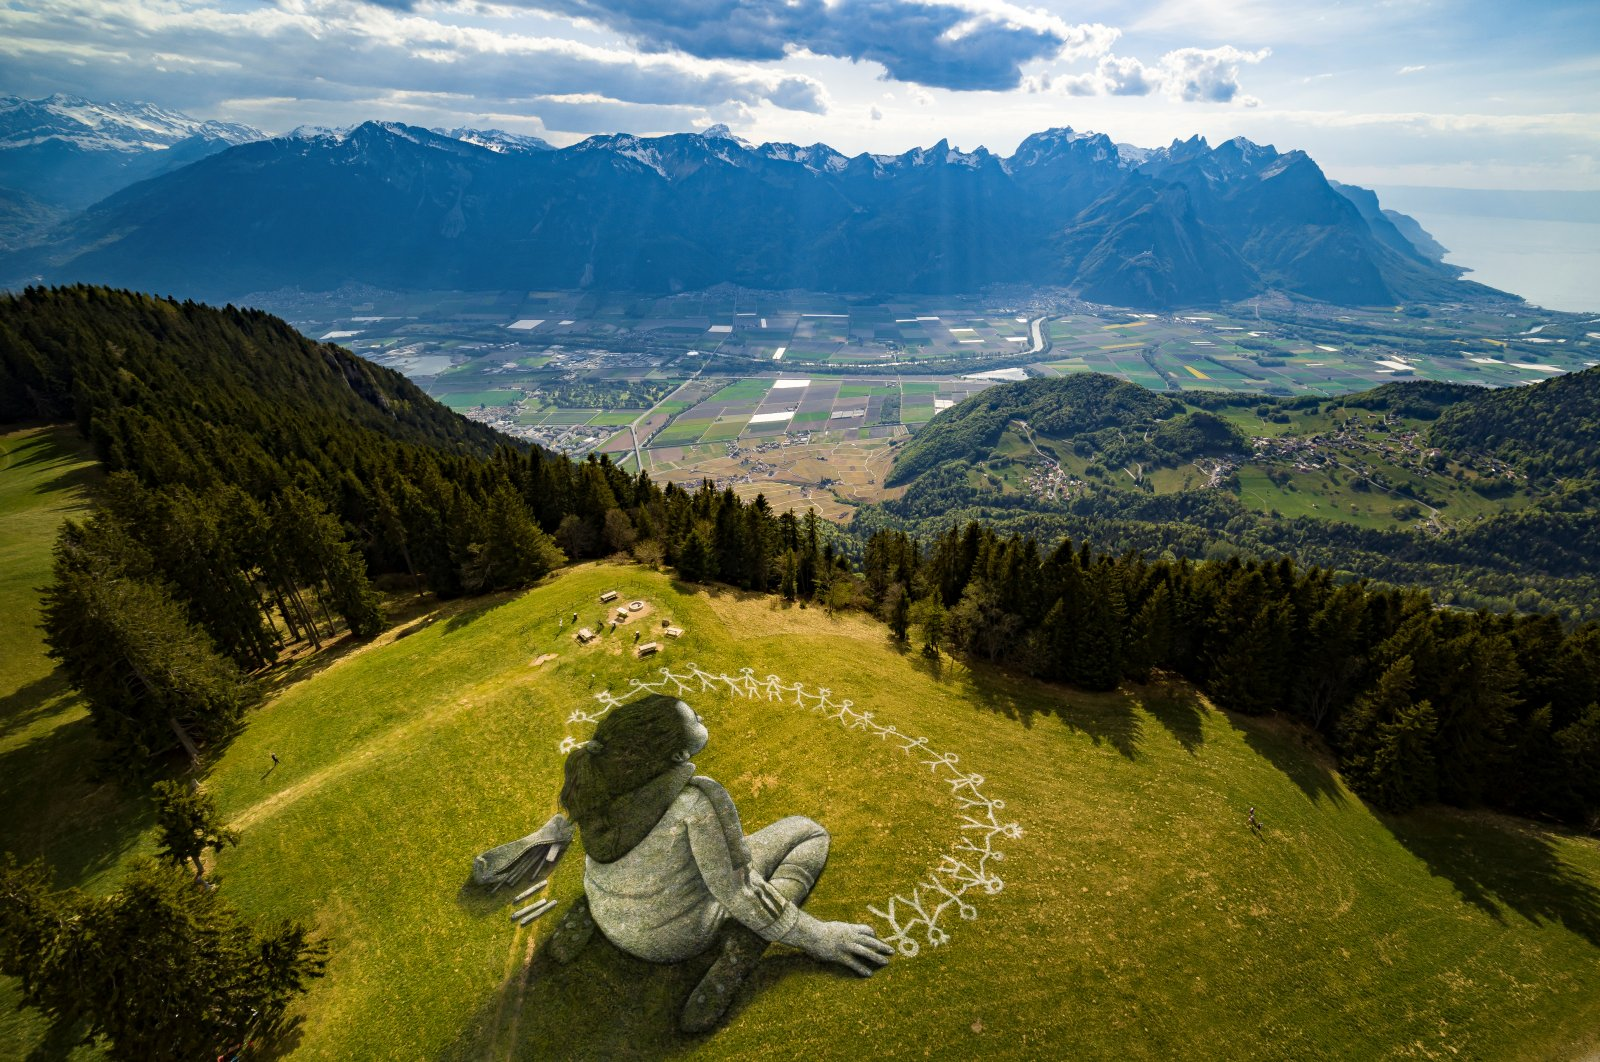 """An artwork called """"Beyond Crisis"""" by French artist Guillaume Legros aka Saype and created with an eco paint made out of chalk and coal over a 3,000-square-meter field is pictured during the coronavirus disease outbreak in Leysin, Switzerland, April 24, 2020. (Reuters Photo)"""